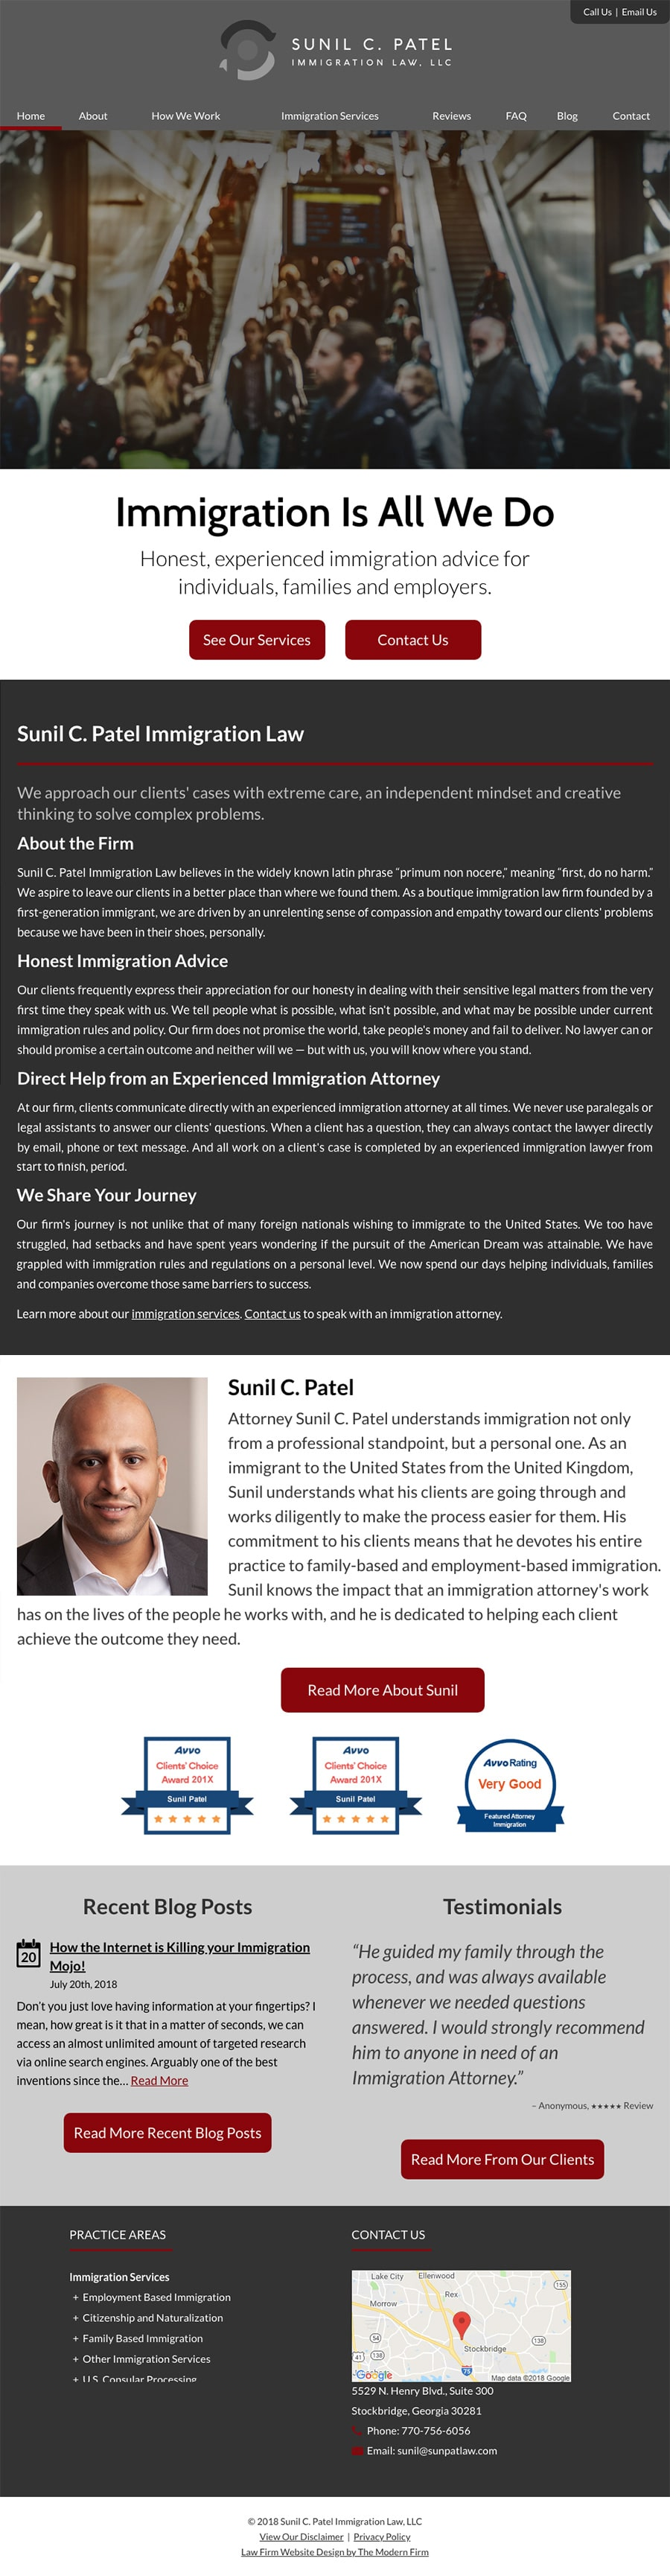 Law Firm Website Design for Sunil C. Patel Immigration Law, LLC